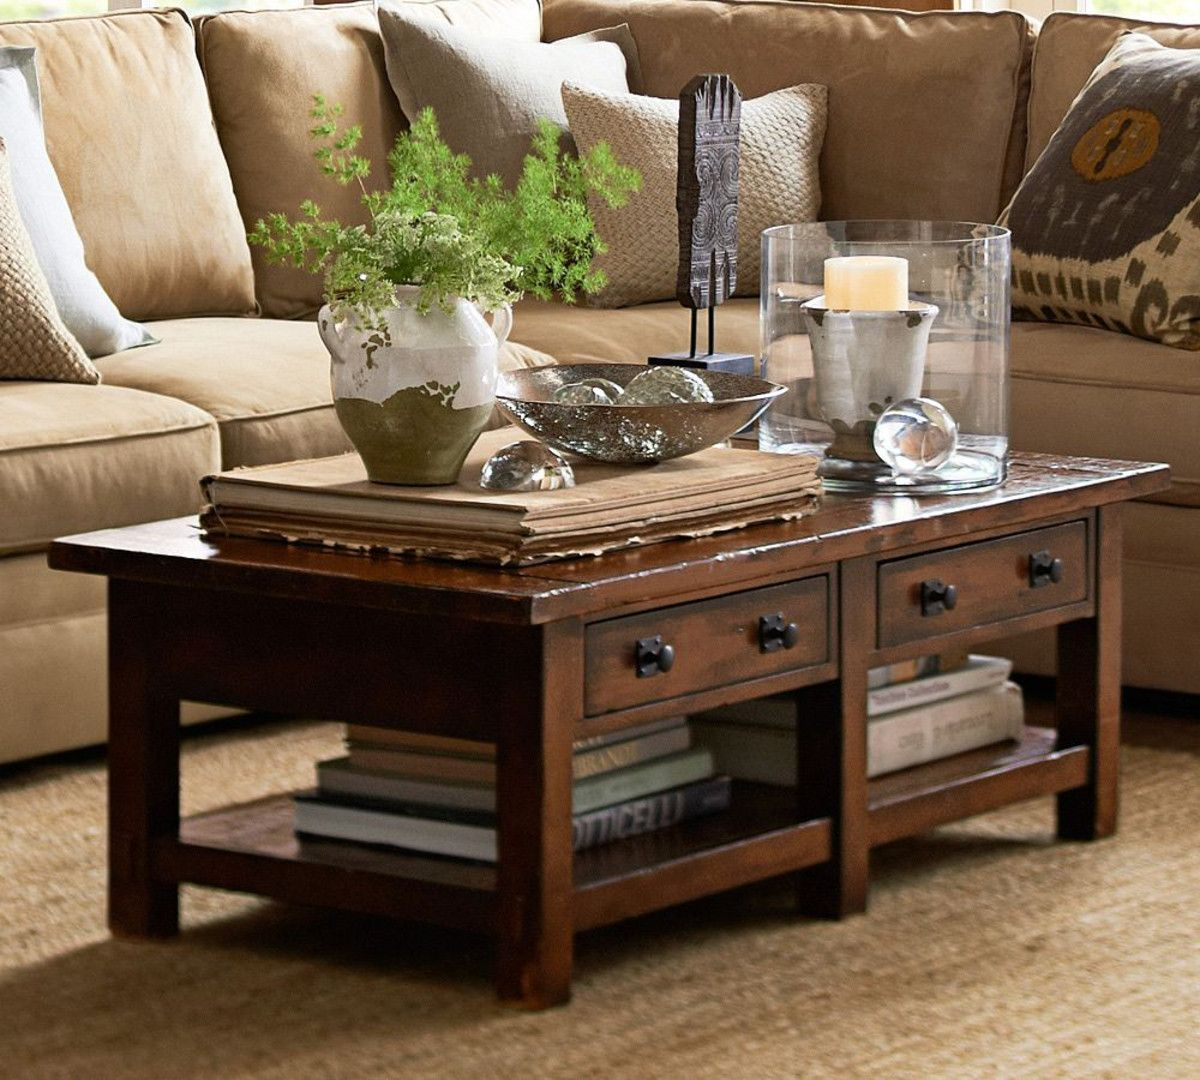 benchwright coffee table - rustic mahogany stain | pottery barn au